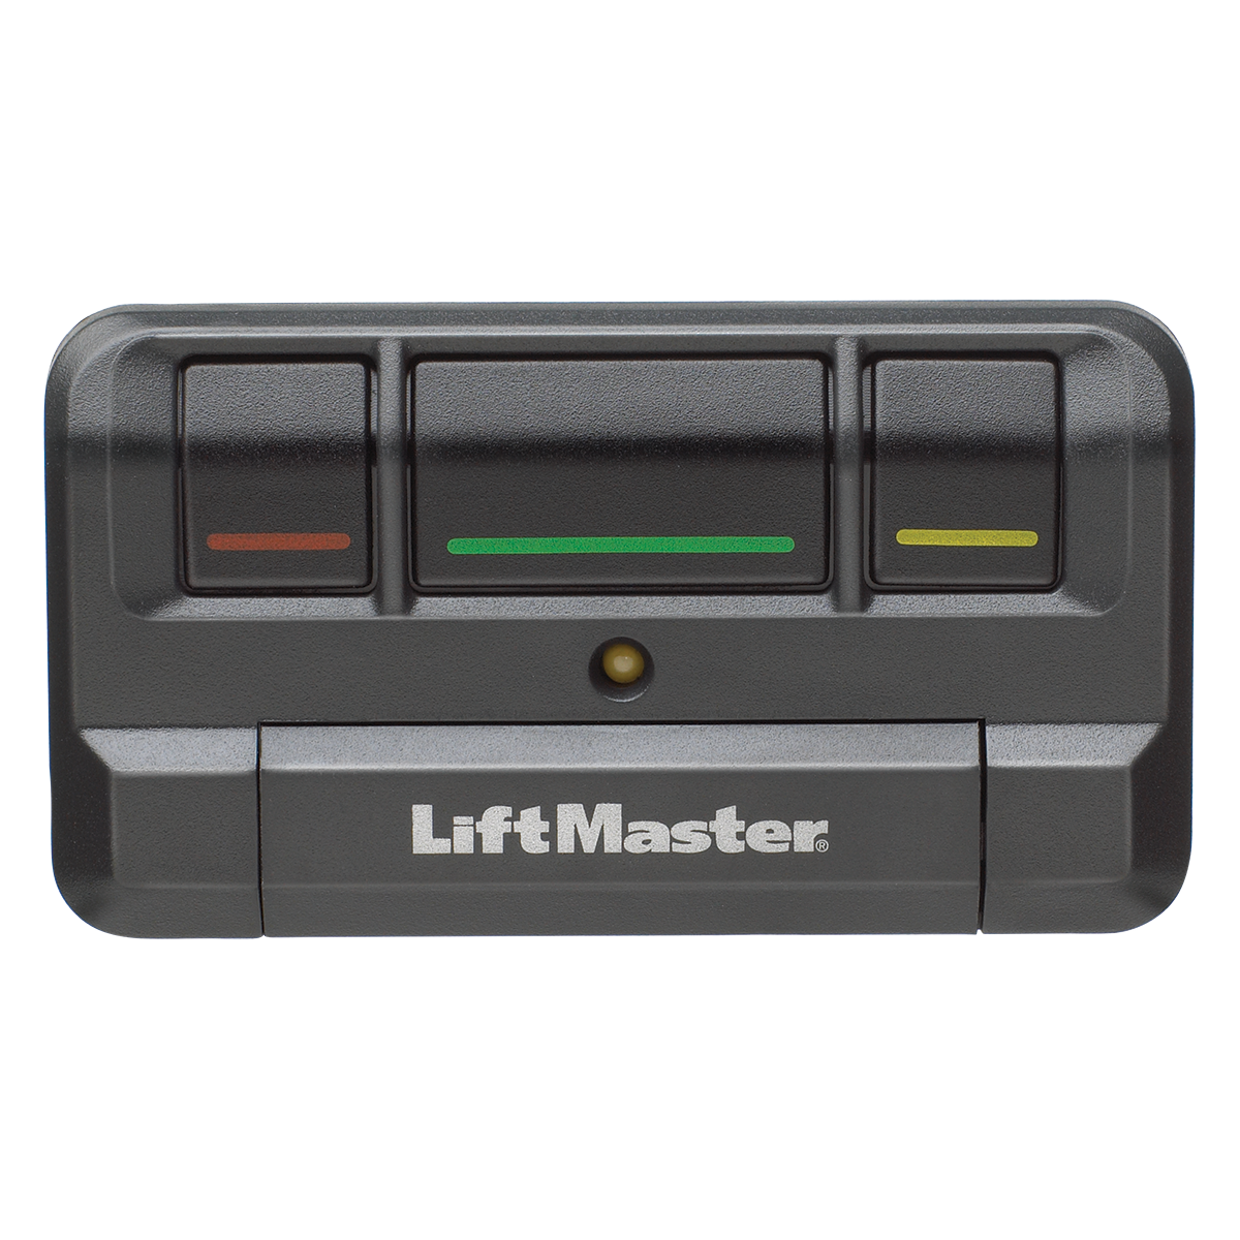 Liftmaster 813LM